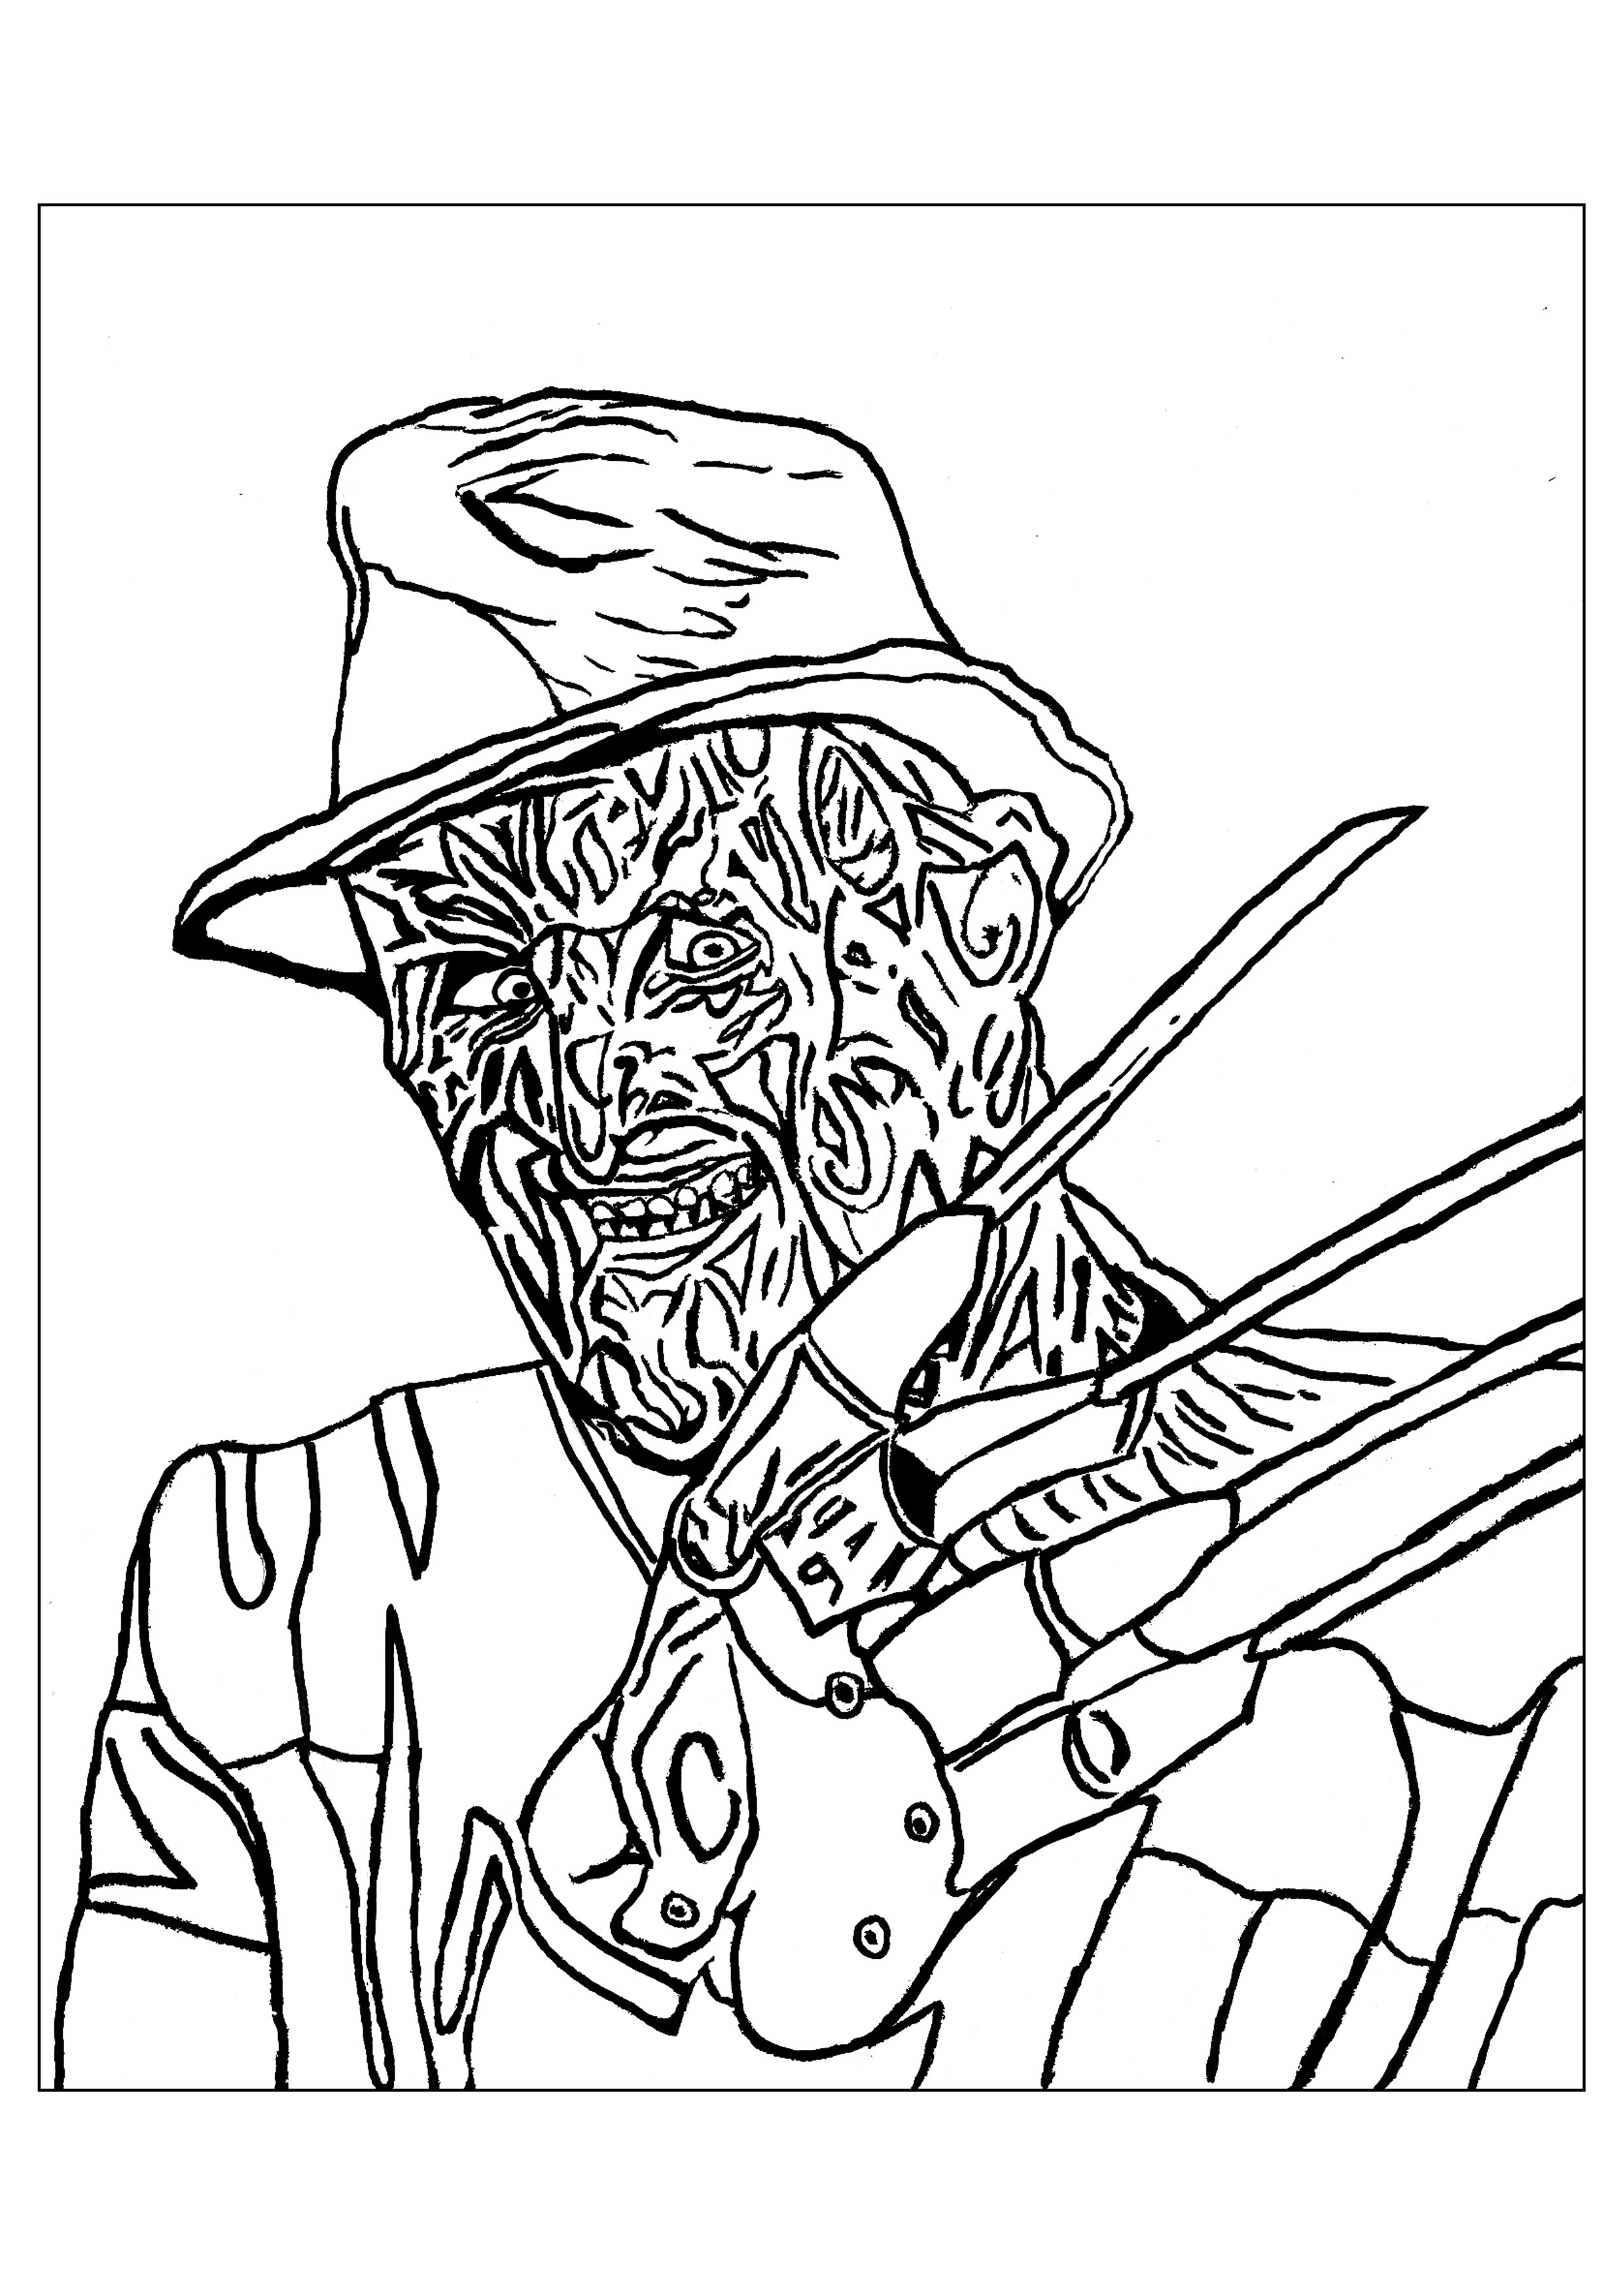 haloween coloring pages scary halloween pumpkin coloring pages team colors pages coloring haloween